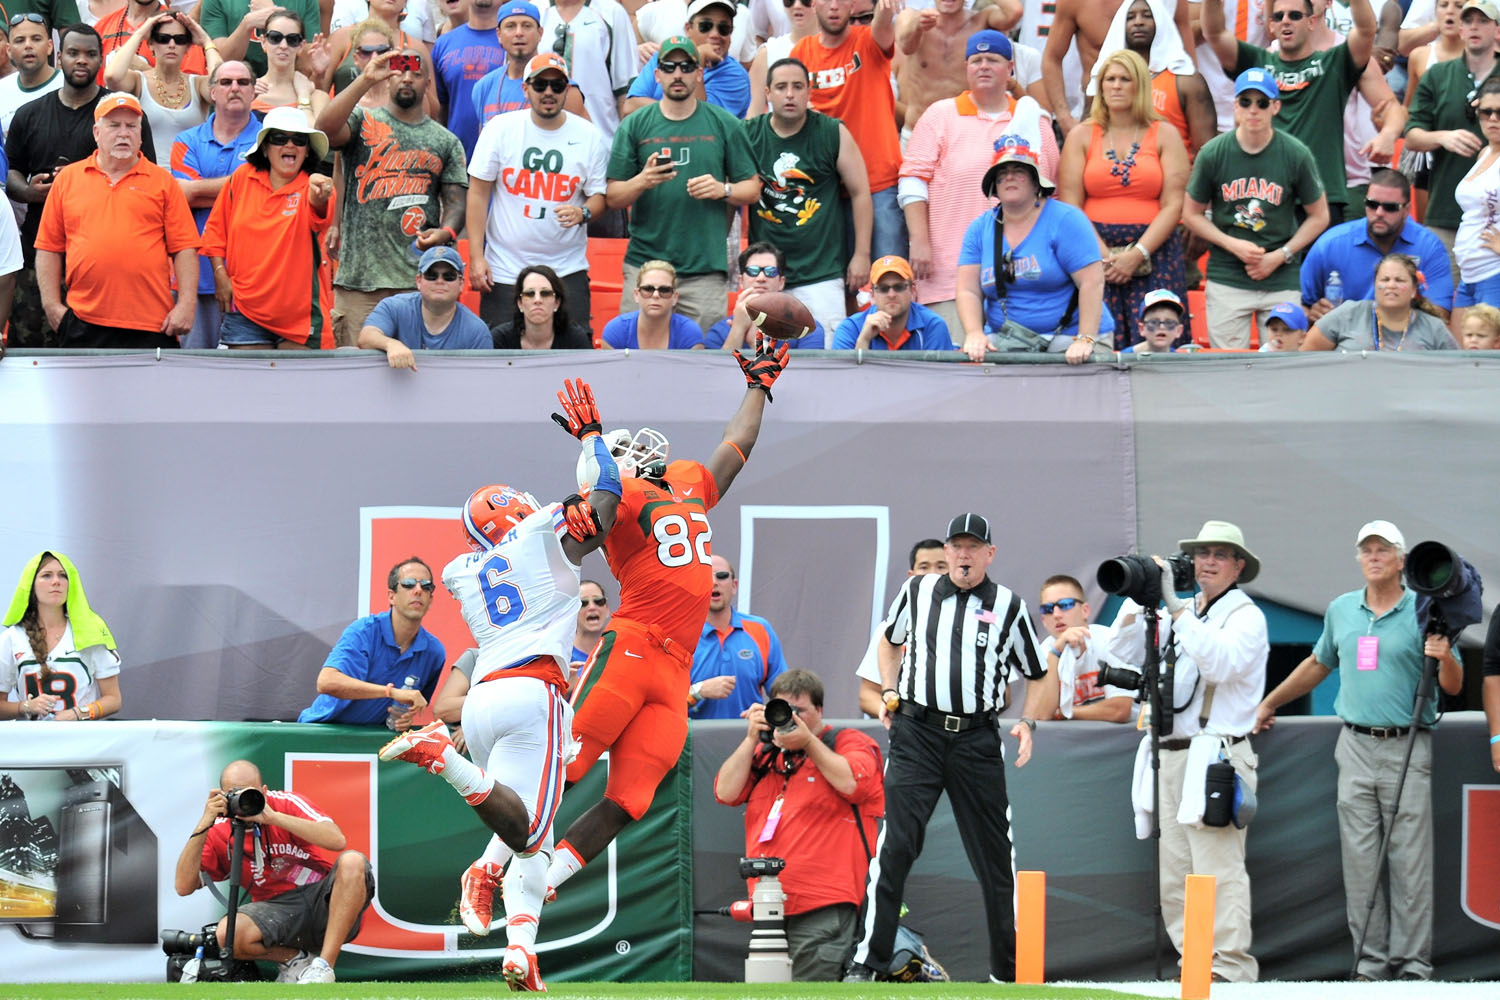 Florida defensive end Dante Fowler Jr. (6) is called for pass interference against Miami tight end Asante Cleveland. (Steve Mitchell/USA TODAY Sports)